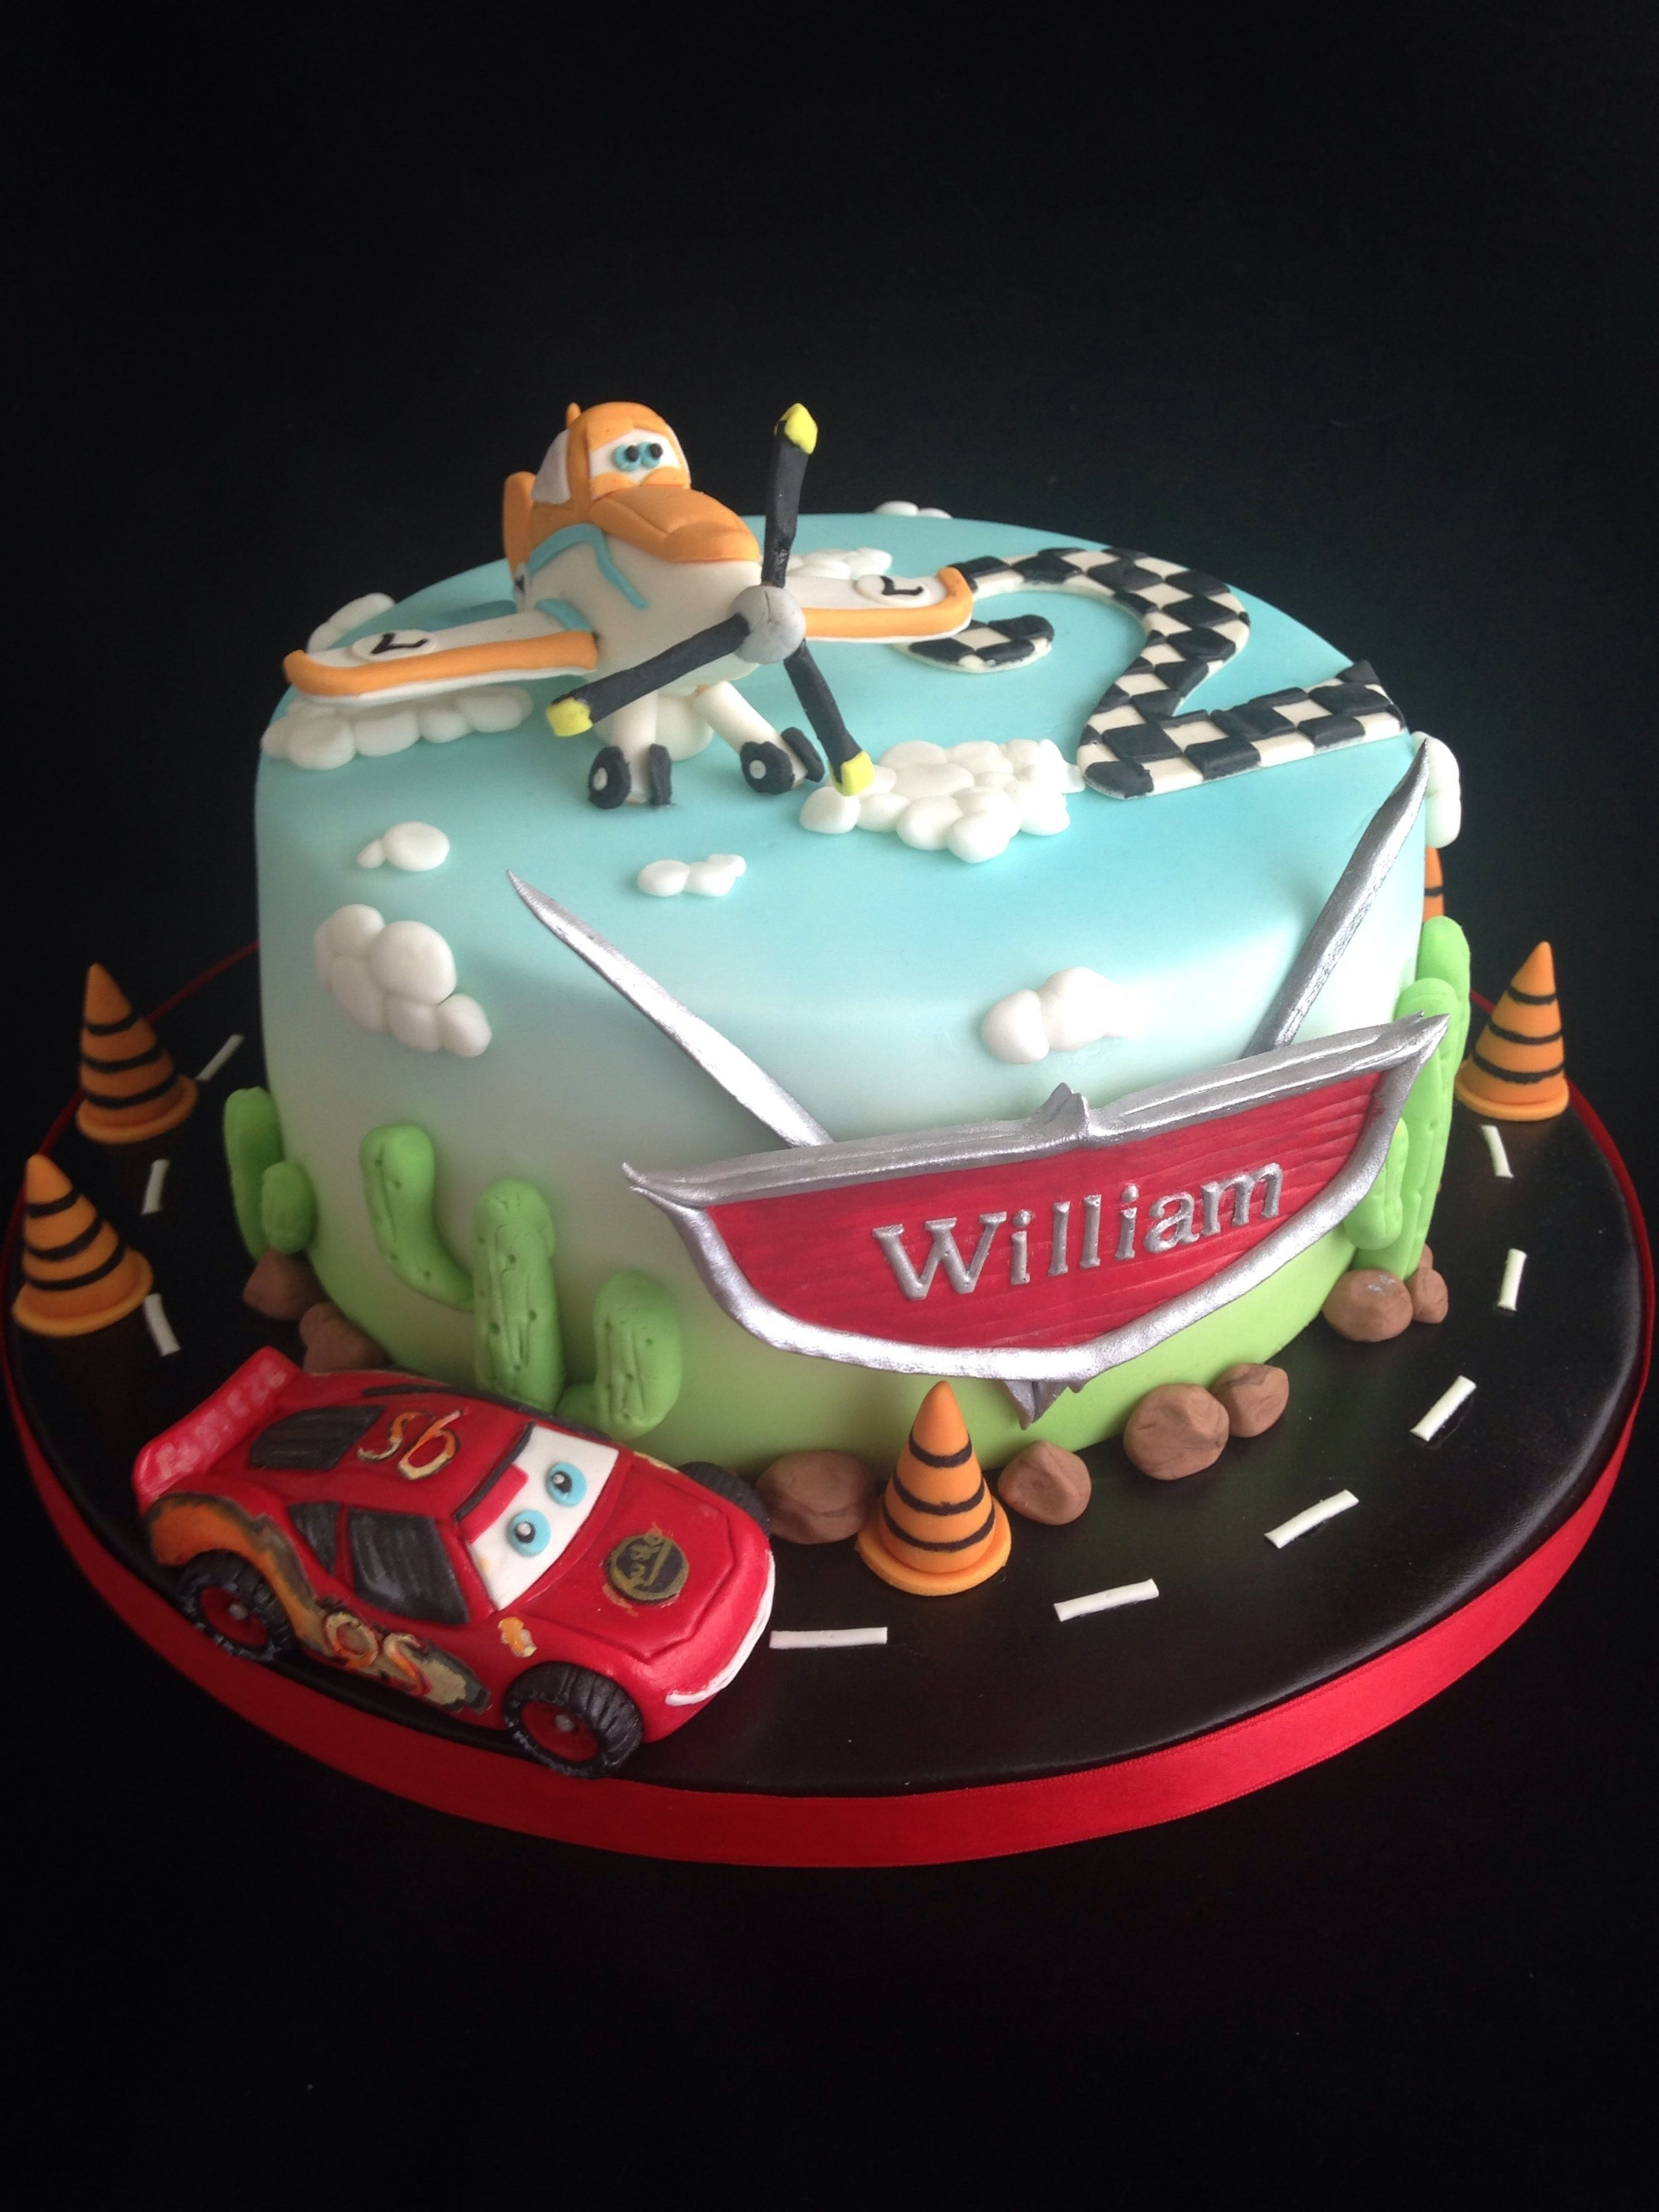 Lightning Mcqueen And Dusty Crophopper Birthday Cake X